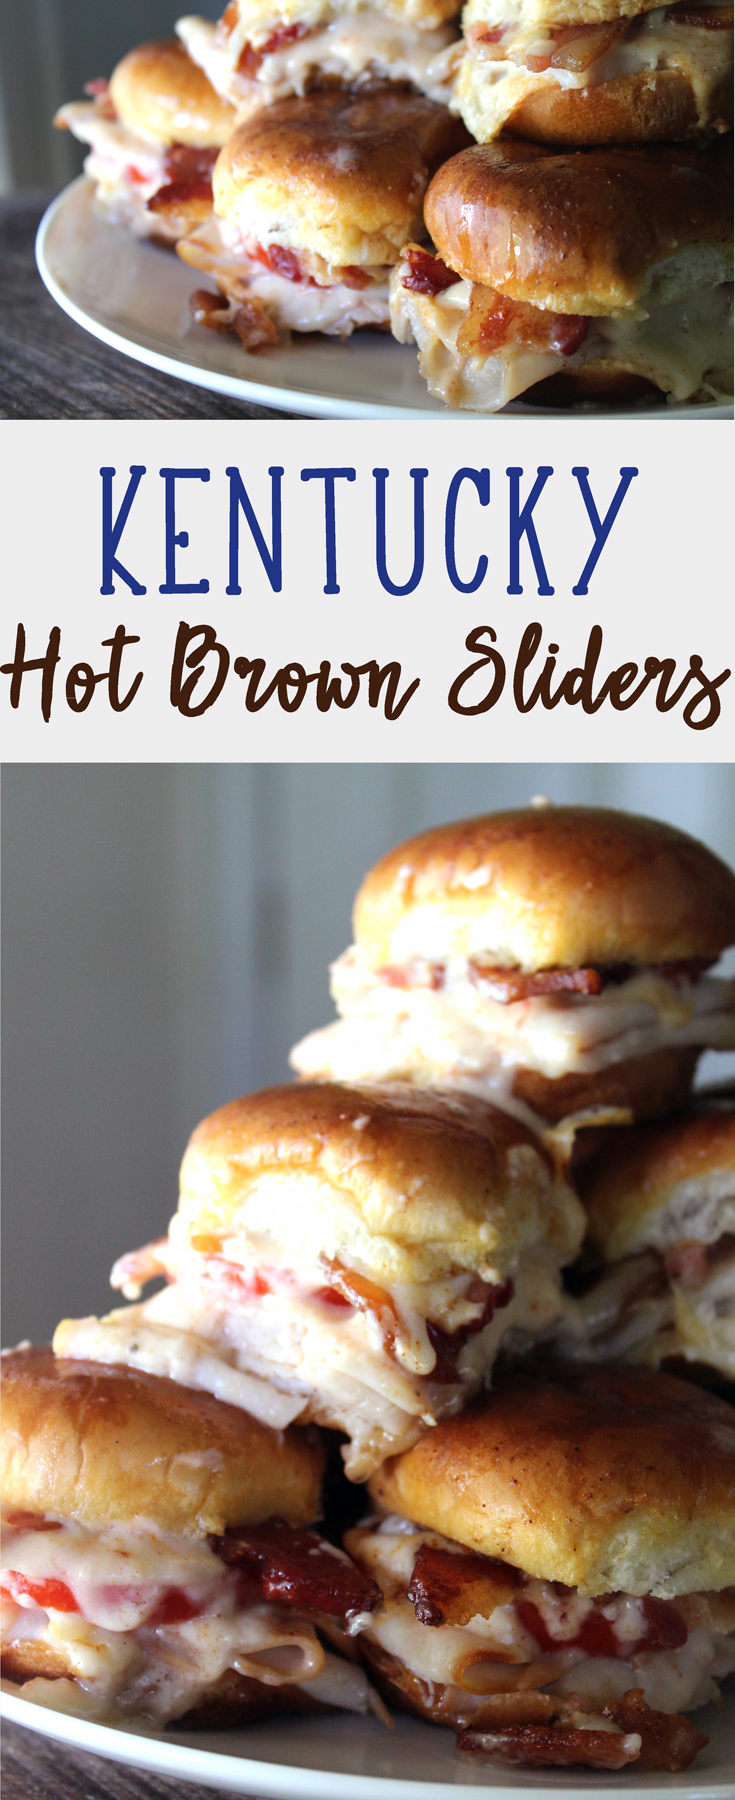 These Kentucky Hot Brown Sliders are so good. Yummy turkey, buttered buns, fresh ripe tomato, cheese gravy (yes, I said CHEESE GRAVY), and bacon. #kentuckyhotbrown